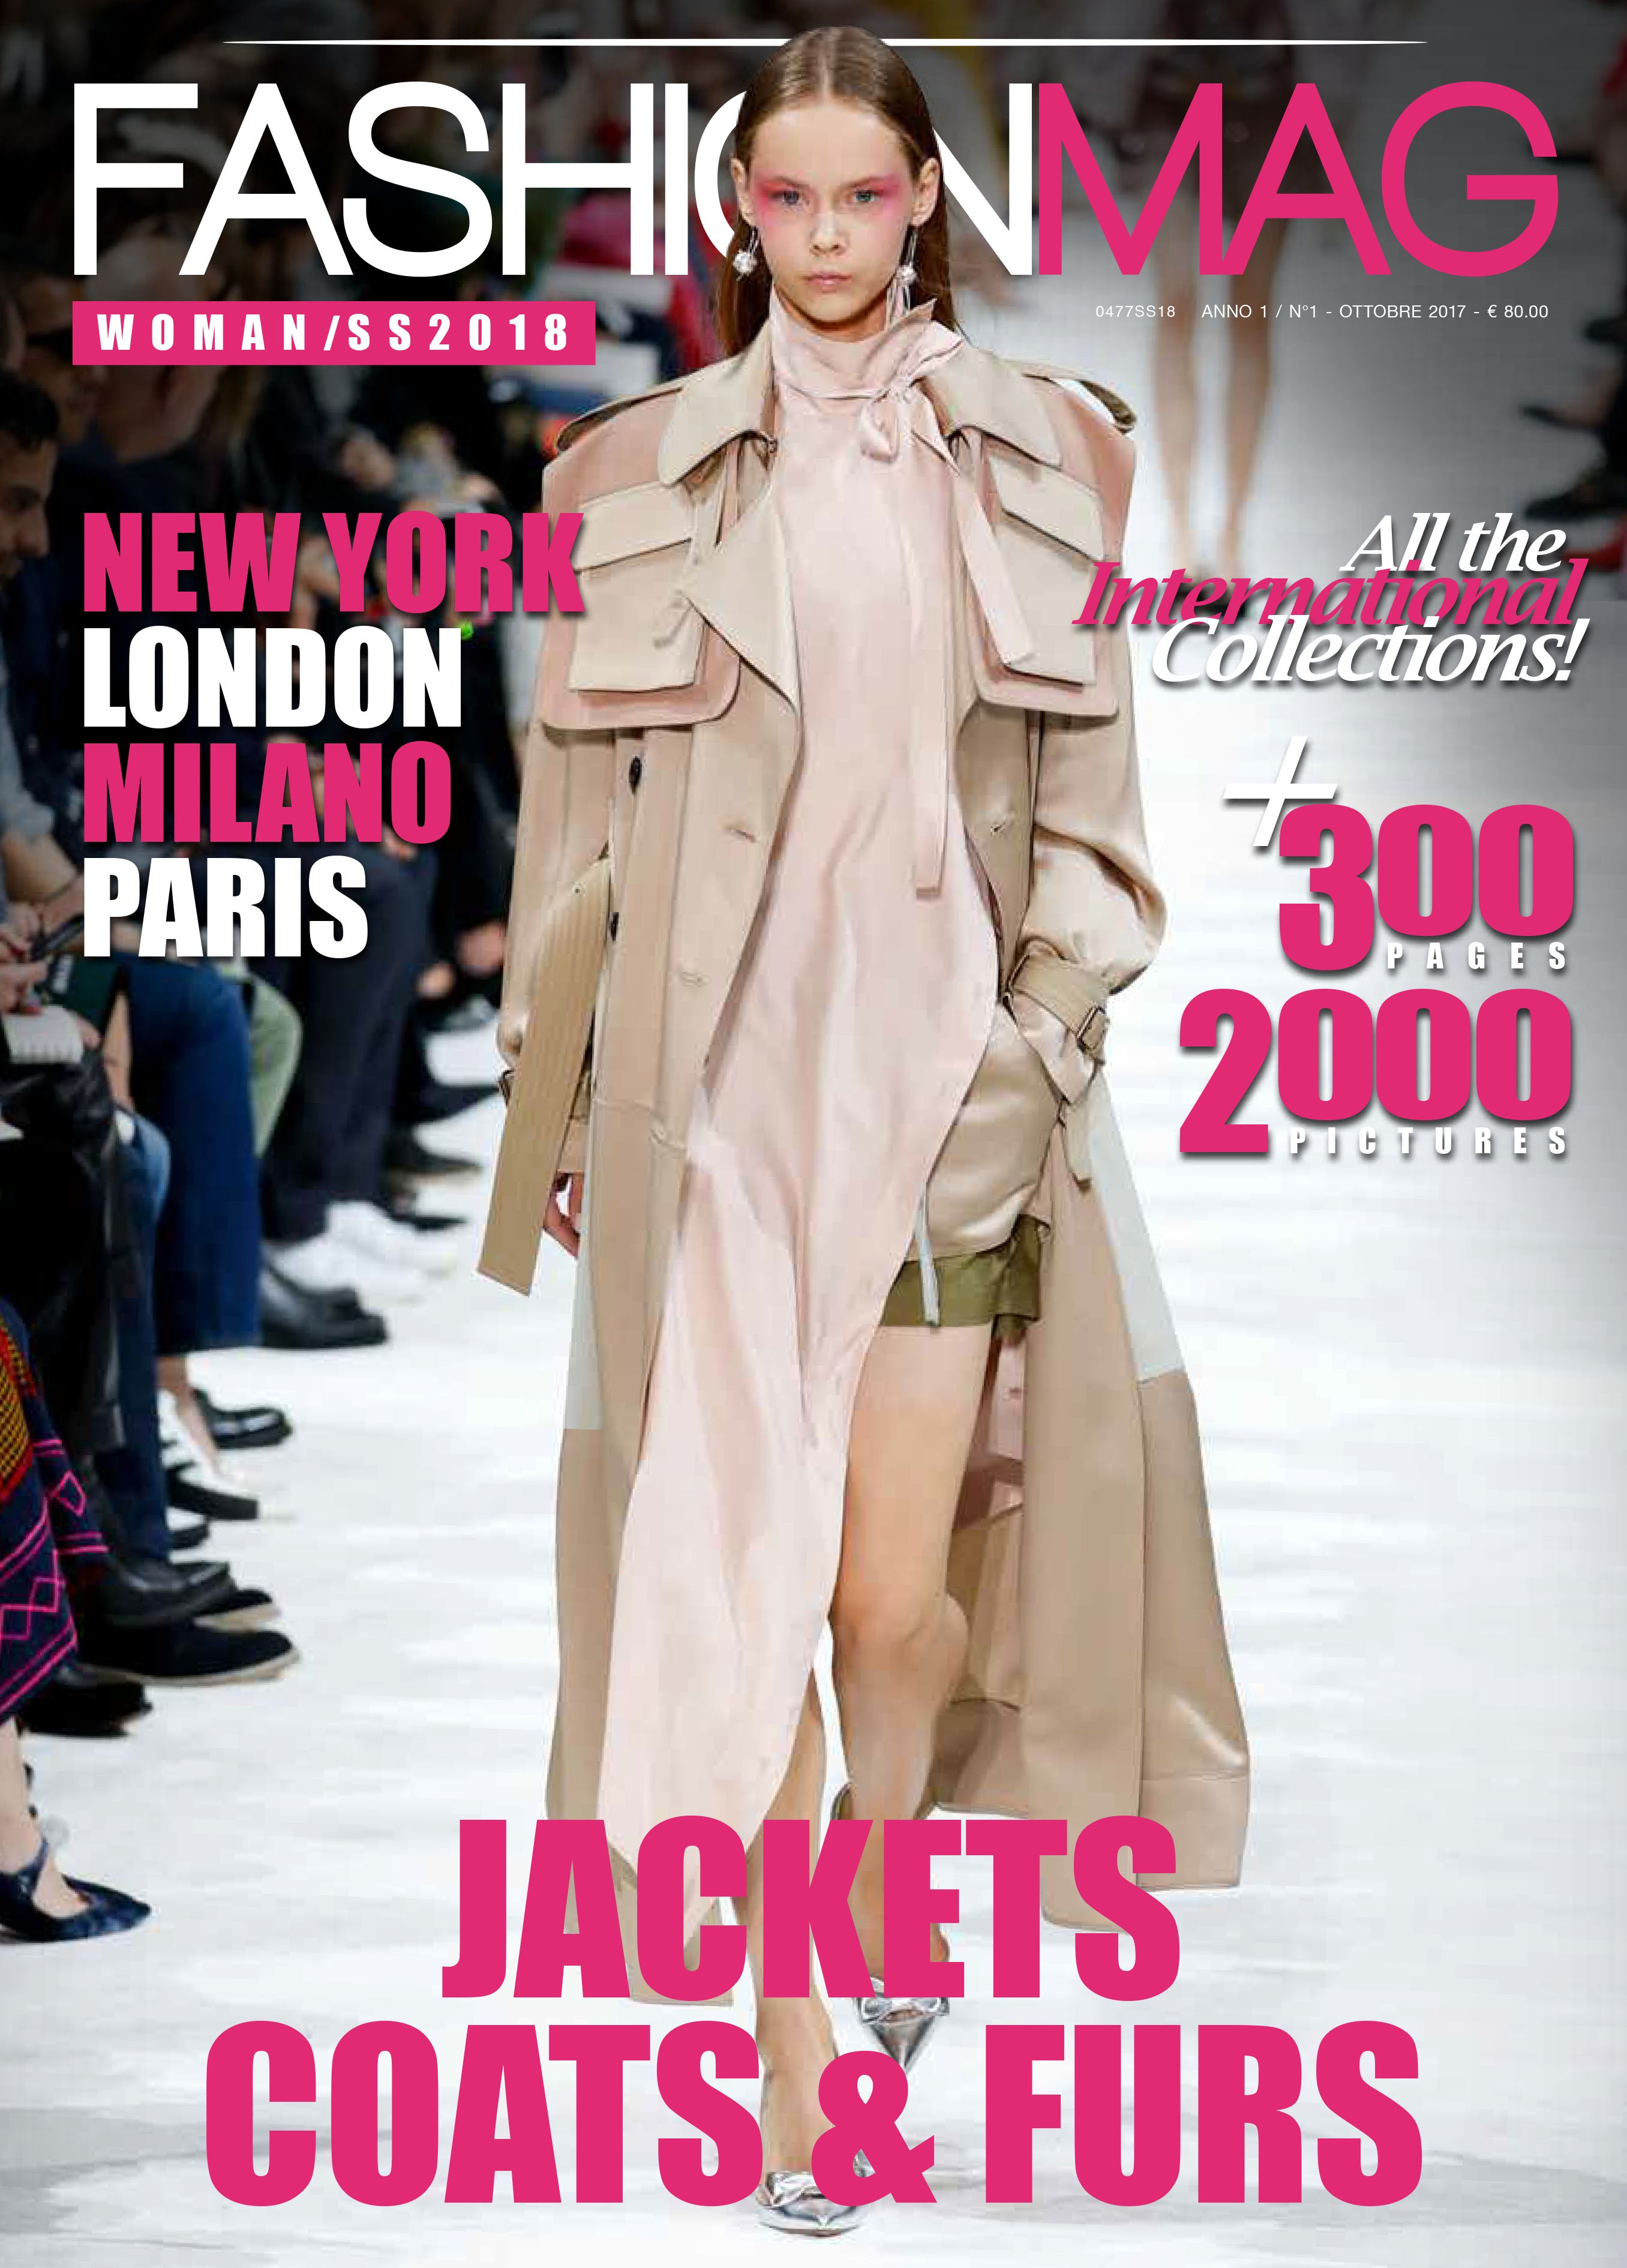 FASHIONMAG JACKETS COATS&FURS